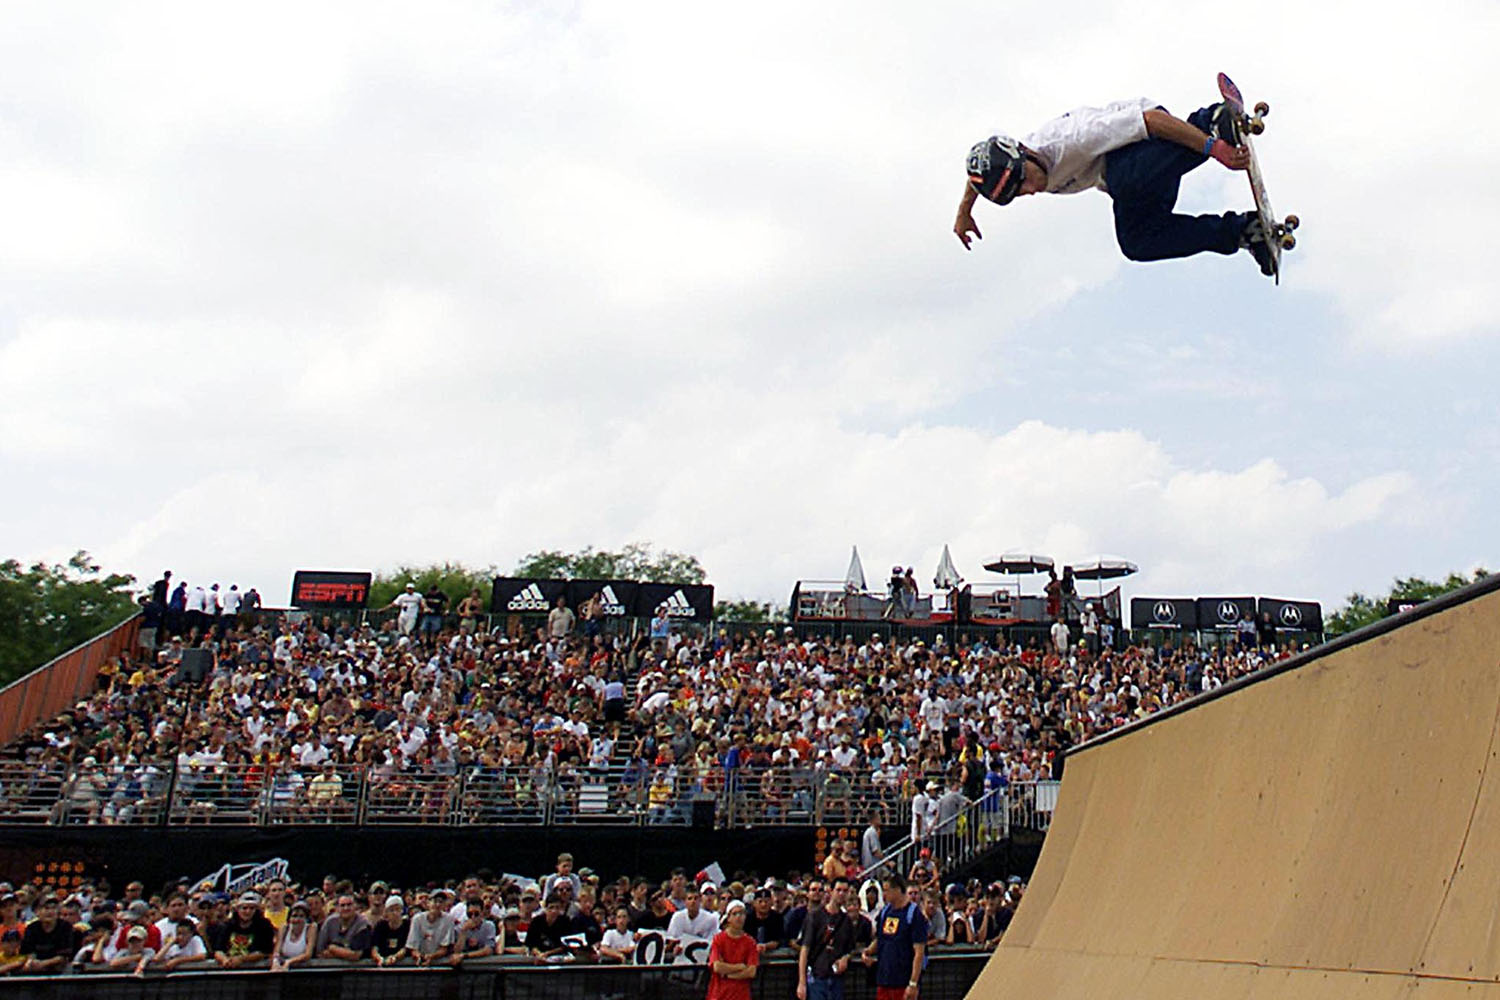 Roman Hackl warms up before the start of the Men's Skateboard Park Final's during the 2001 Summer X Games at the First Union Complex in Philadelphia, PA, 20 August 2001.